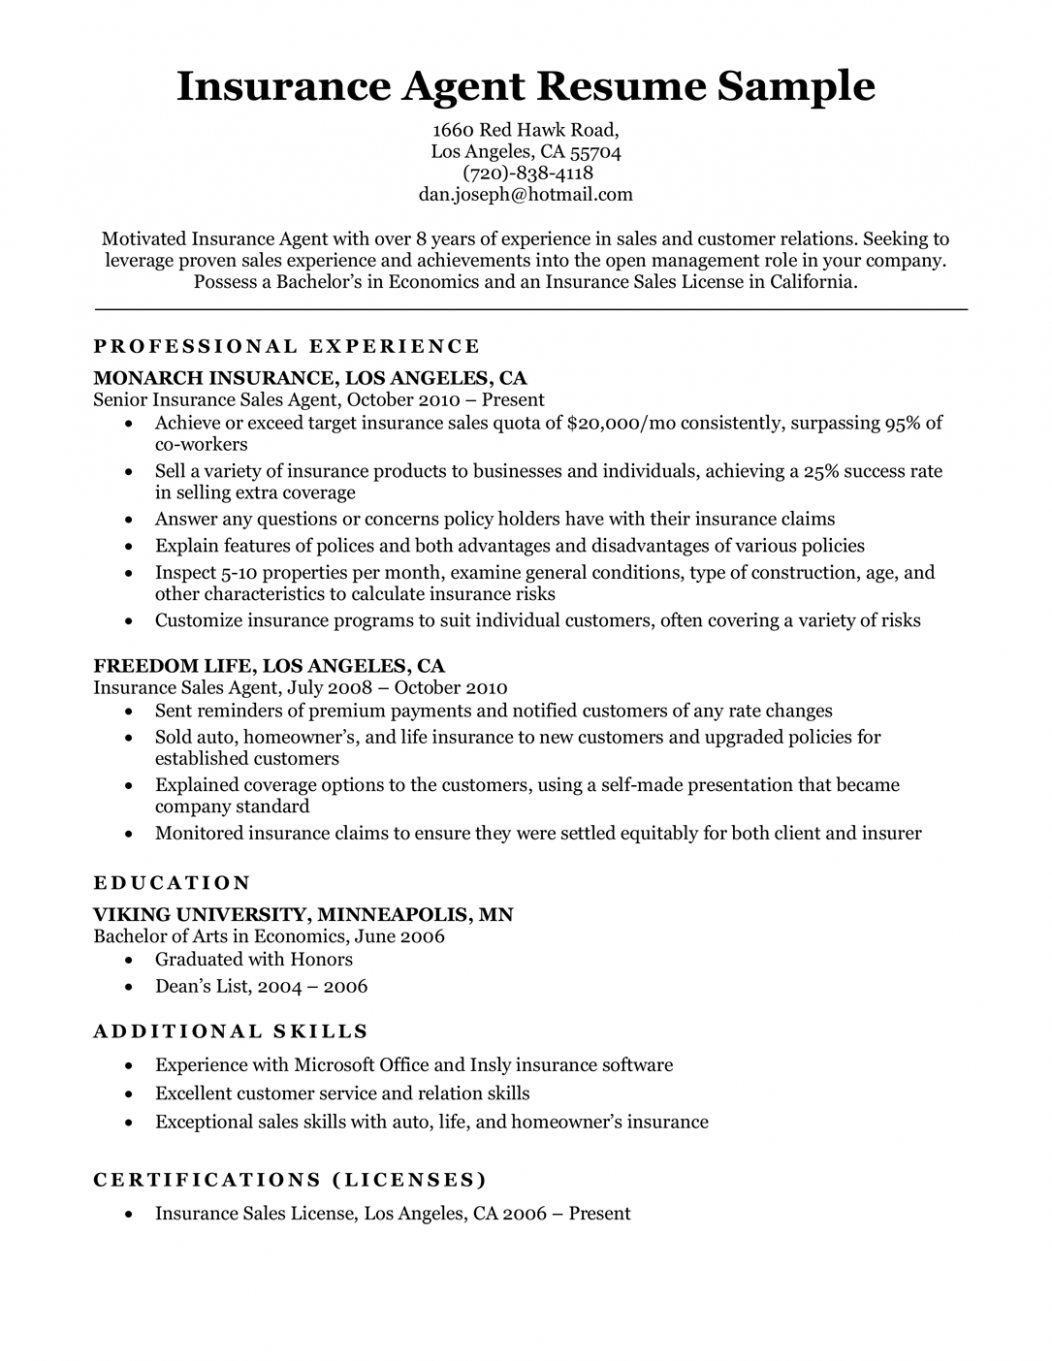 Resume Objective Examples For Multiple Jobs In 2021 Resume Objective Examples Resume Examples Resume